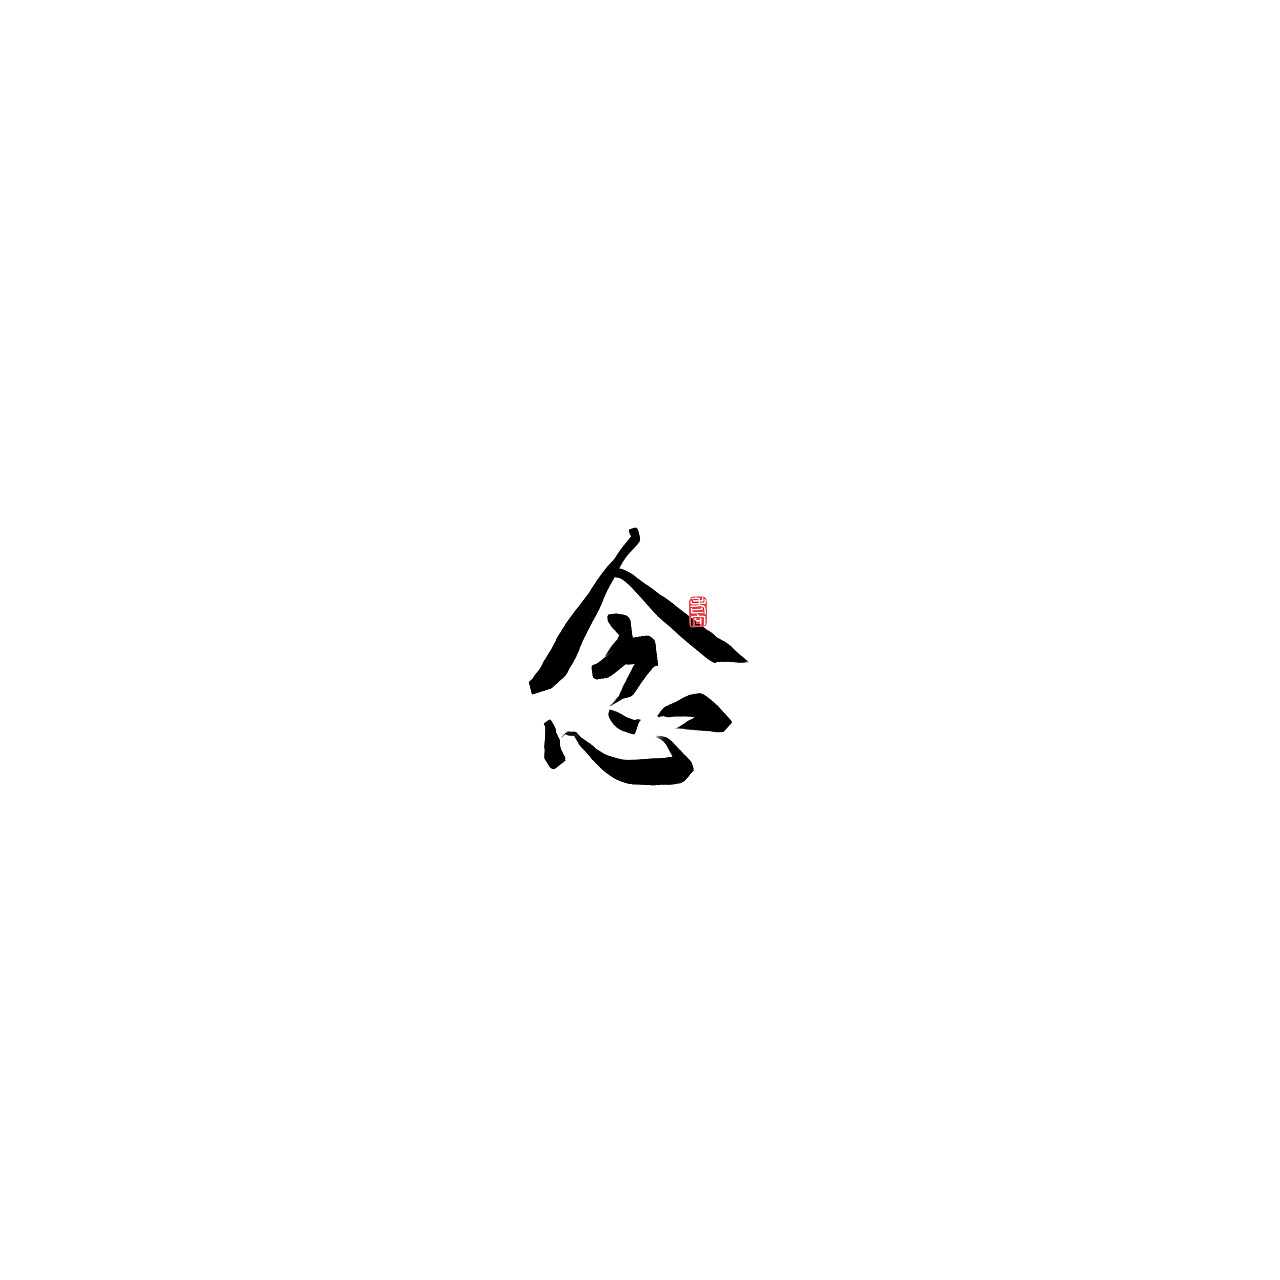 11P Chinese traditional calligraphy brush calligraphy font style appreciation #.1394